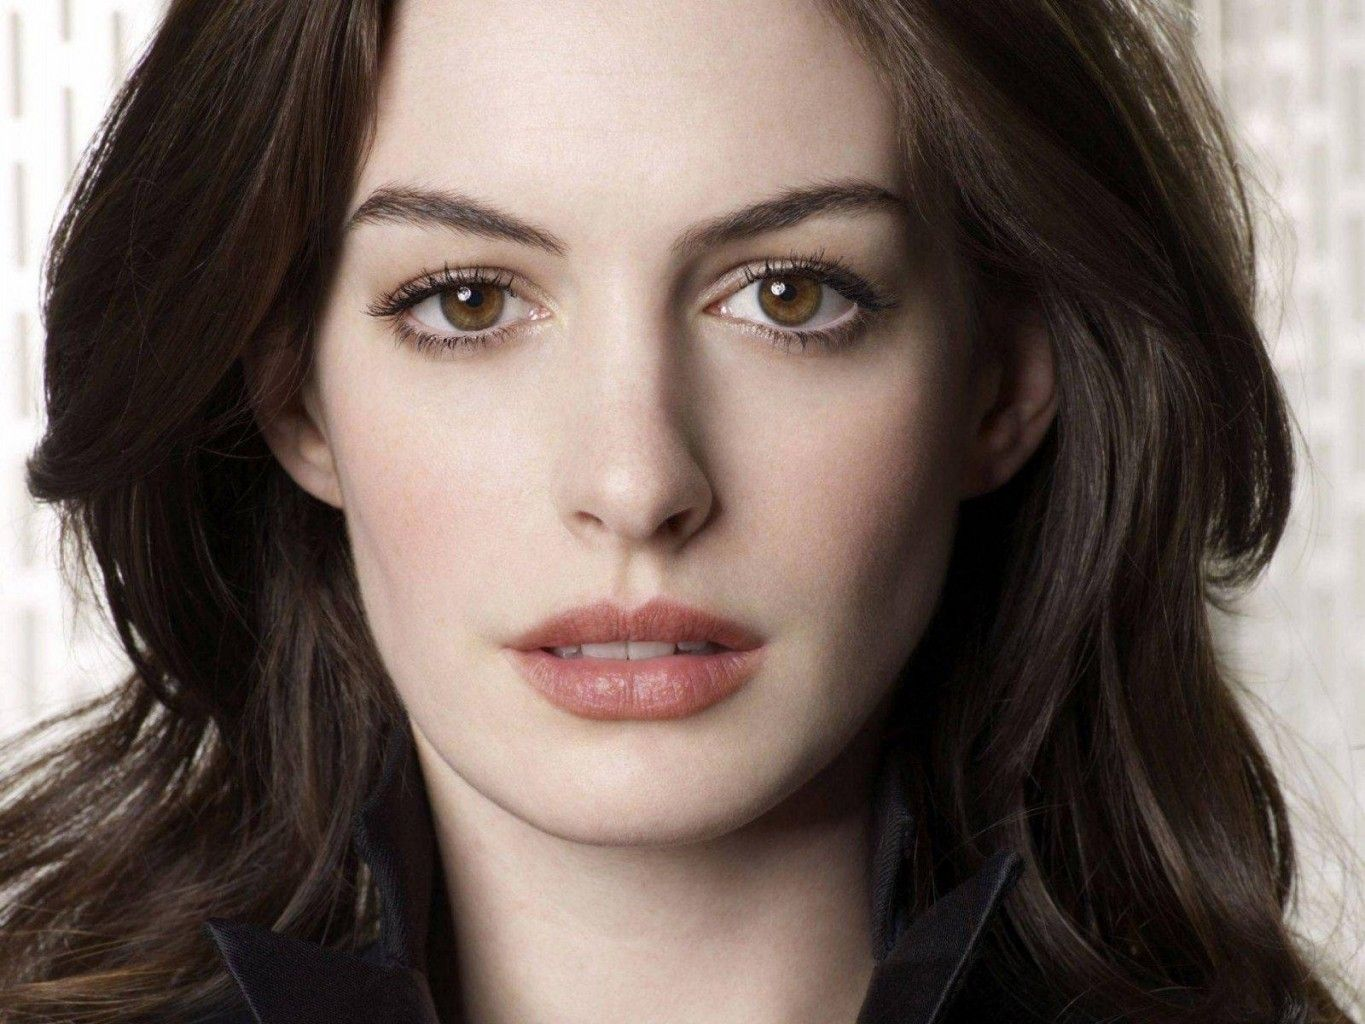 The Most Gorgeous Women with Doe Eyes | Anne hathaway, Beauty, Actresses